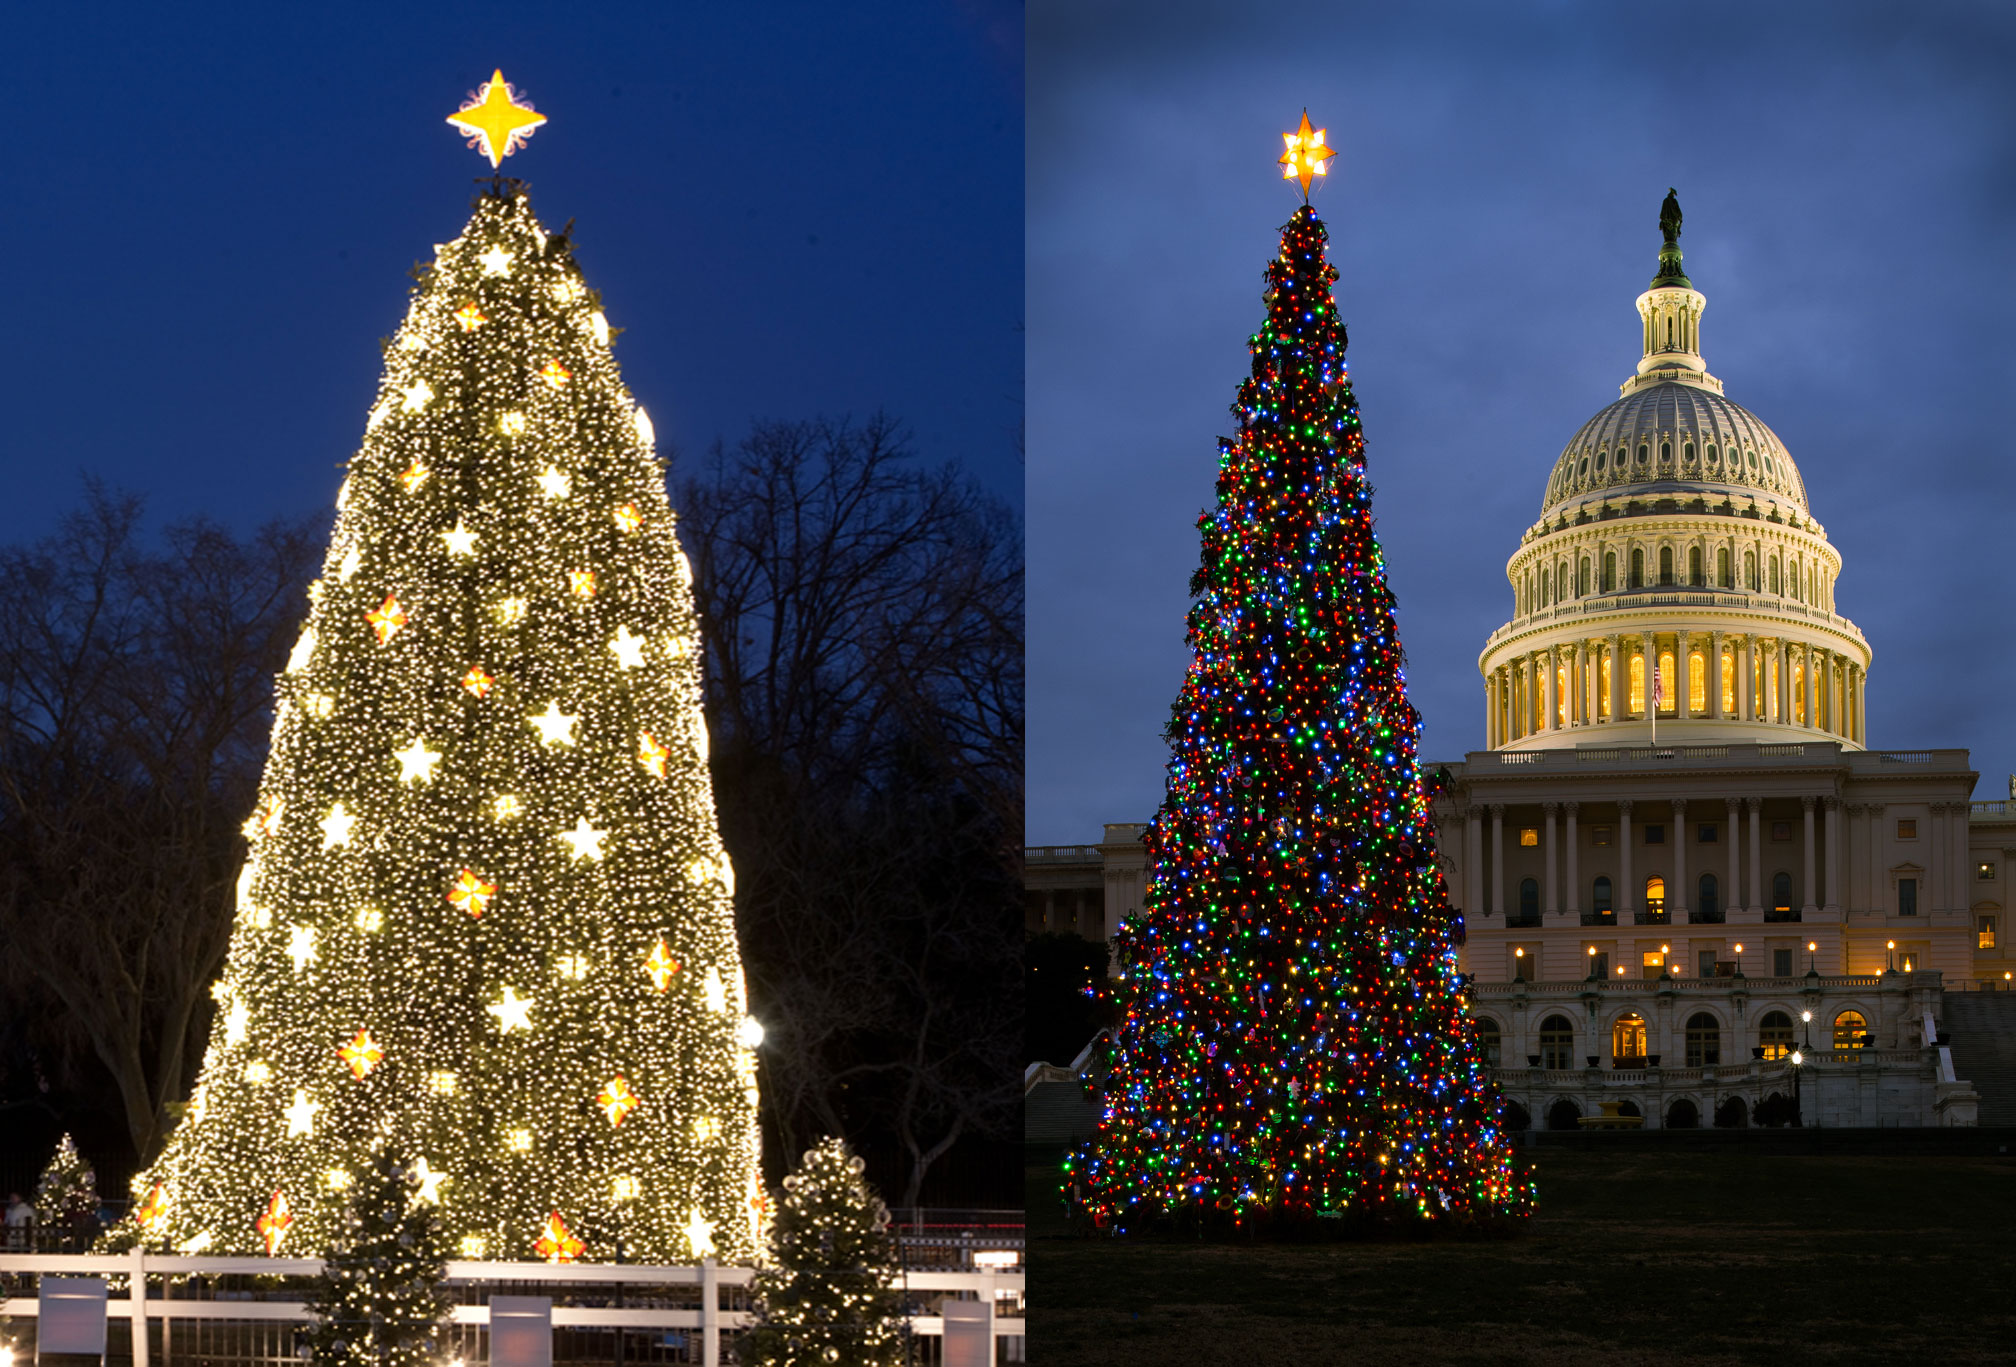 Capitol Christmas Tree.The White House Christmas Tree Vs Congress S Tree Which Is